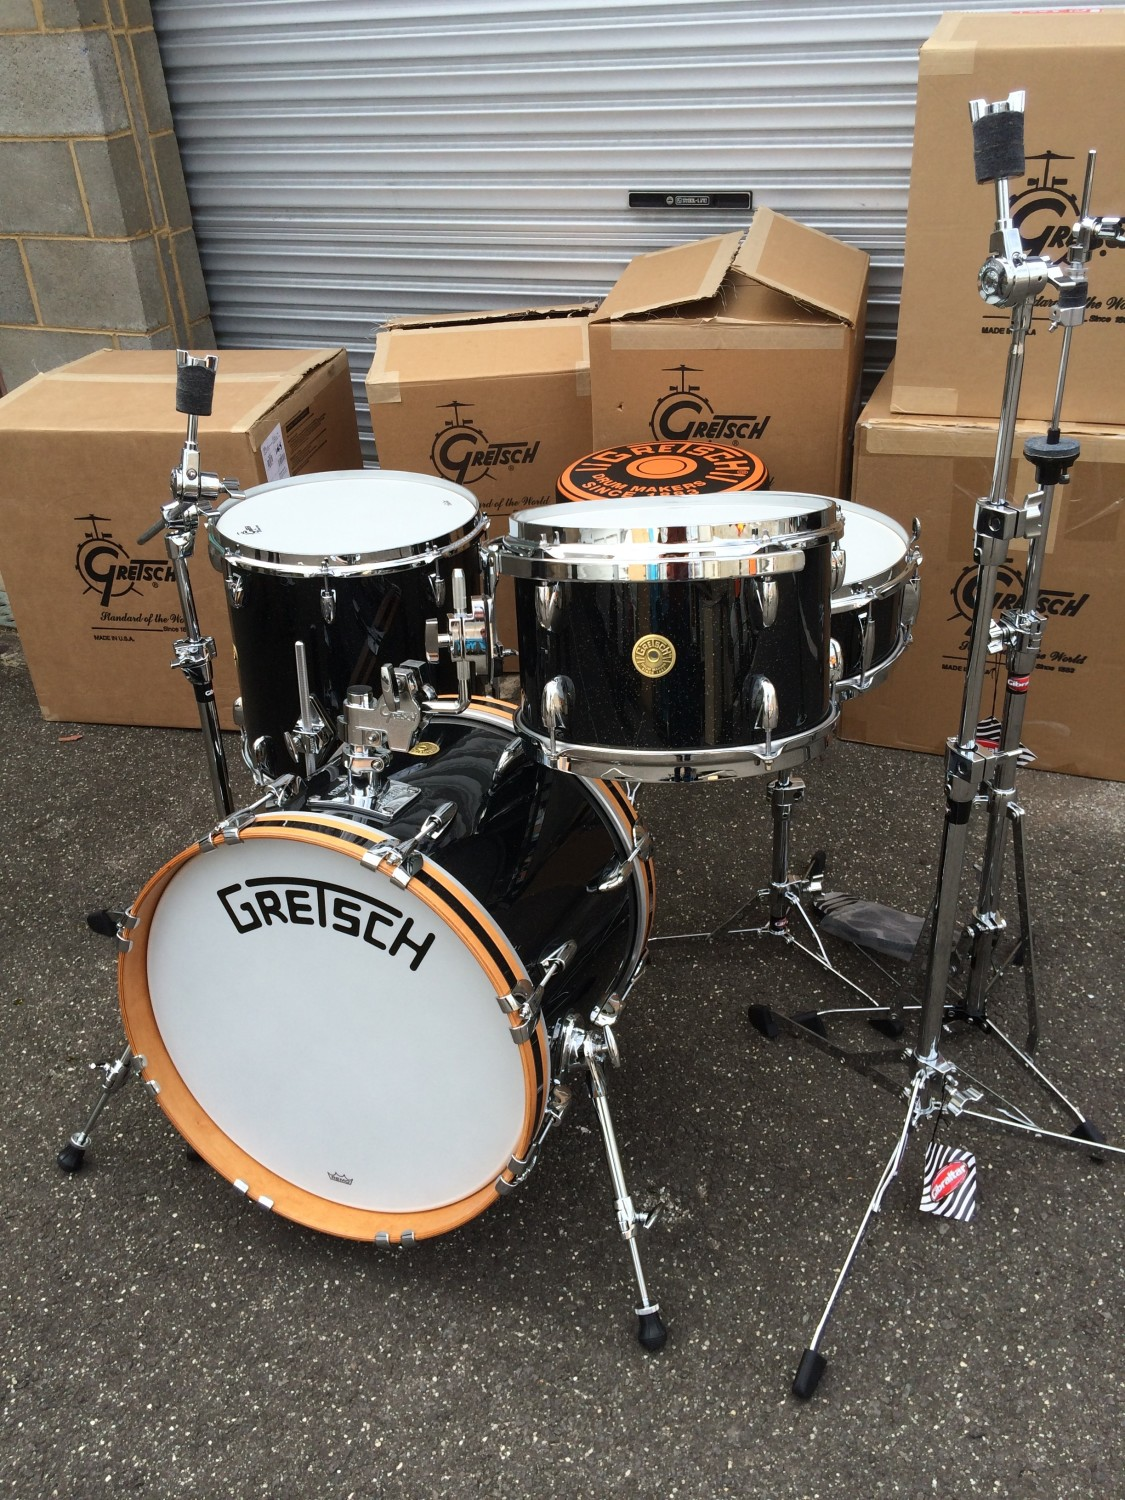 Gretsch BroadKaster 18 u2033 Modern Bop Kit in  u2018Anniversary Sparkle u2019   Drum Drum Warrnambool